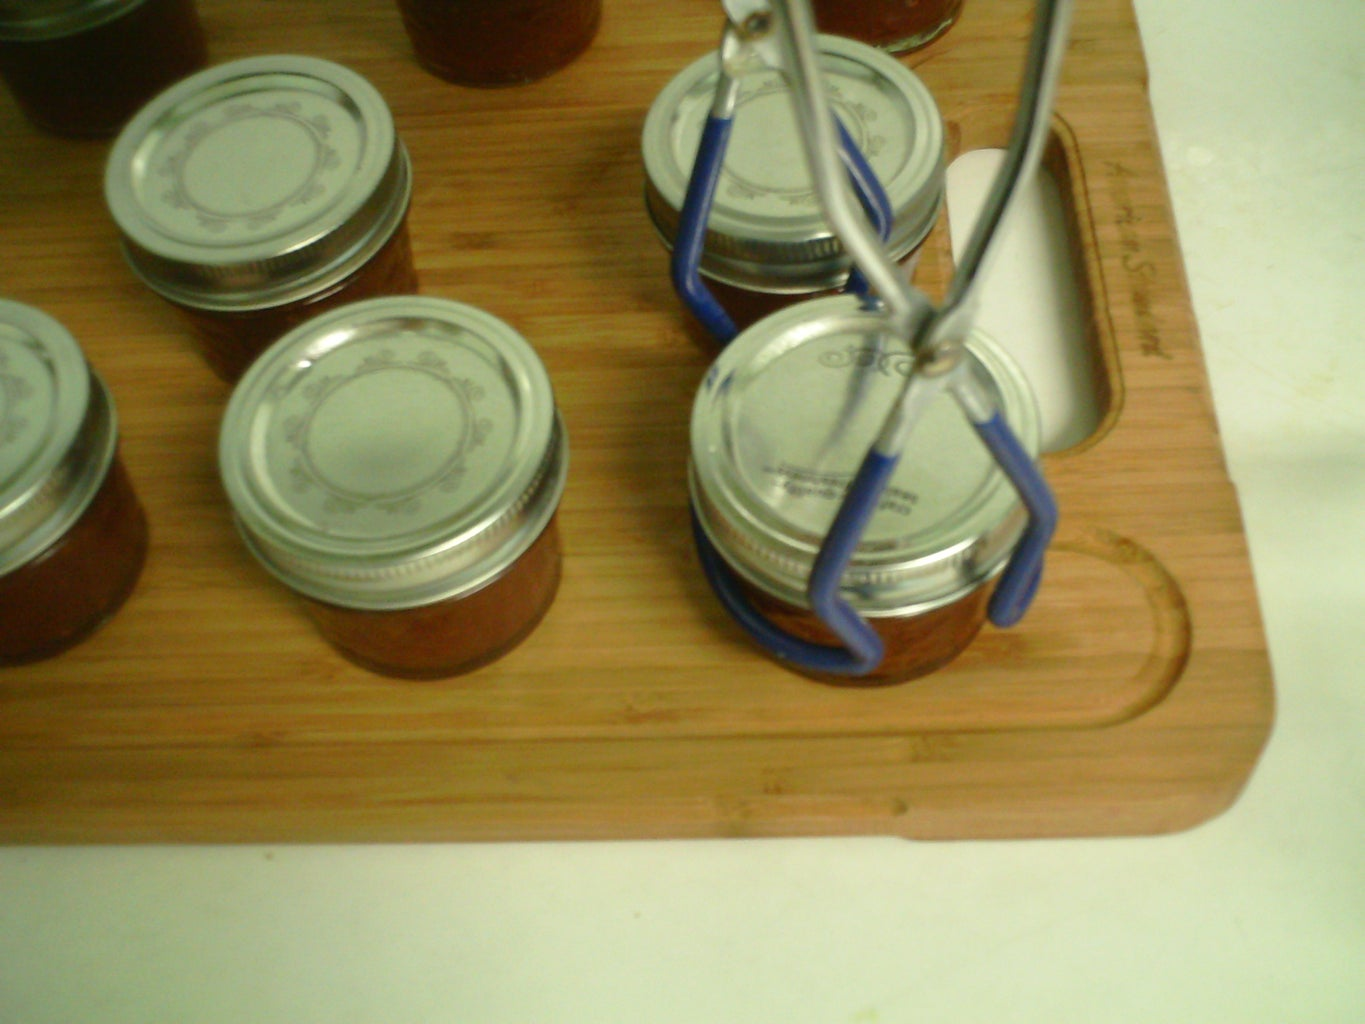 Processing the Jars